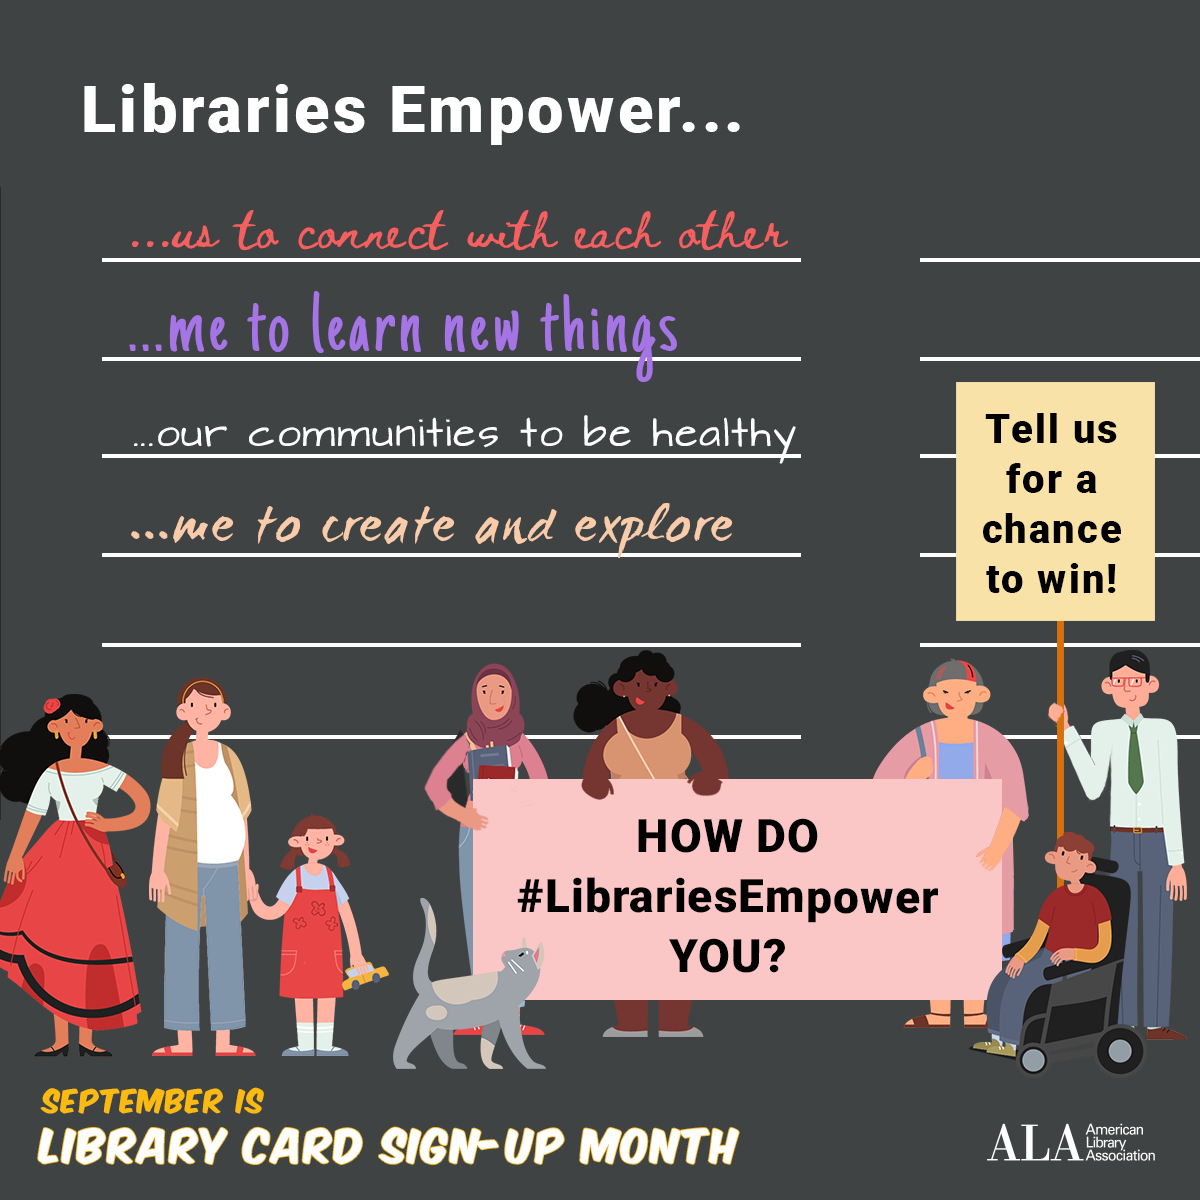 Instagram share: Libraries Empower...us to connect with each other. ...me to learn new things. ...our communities to be healthy. ...me to create and explore. Illustration of diverse group holding a banner that reads: How does the #LibraryEmpower you? Tell us for the chance to win!